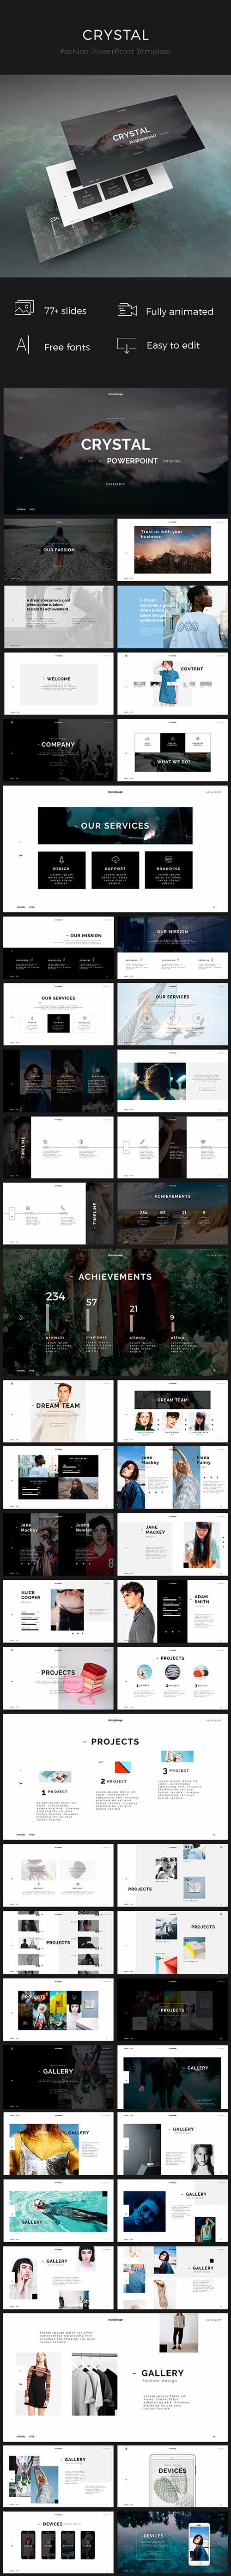 GR - Crystal PowerPoint Template 19158684